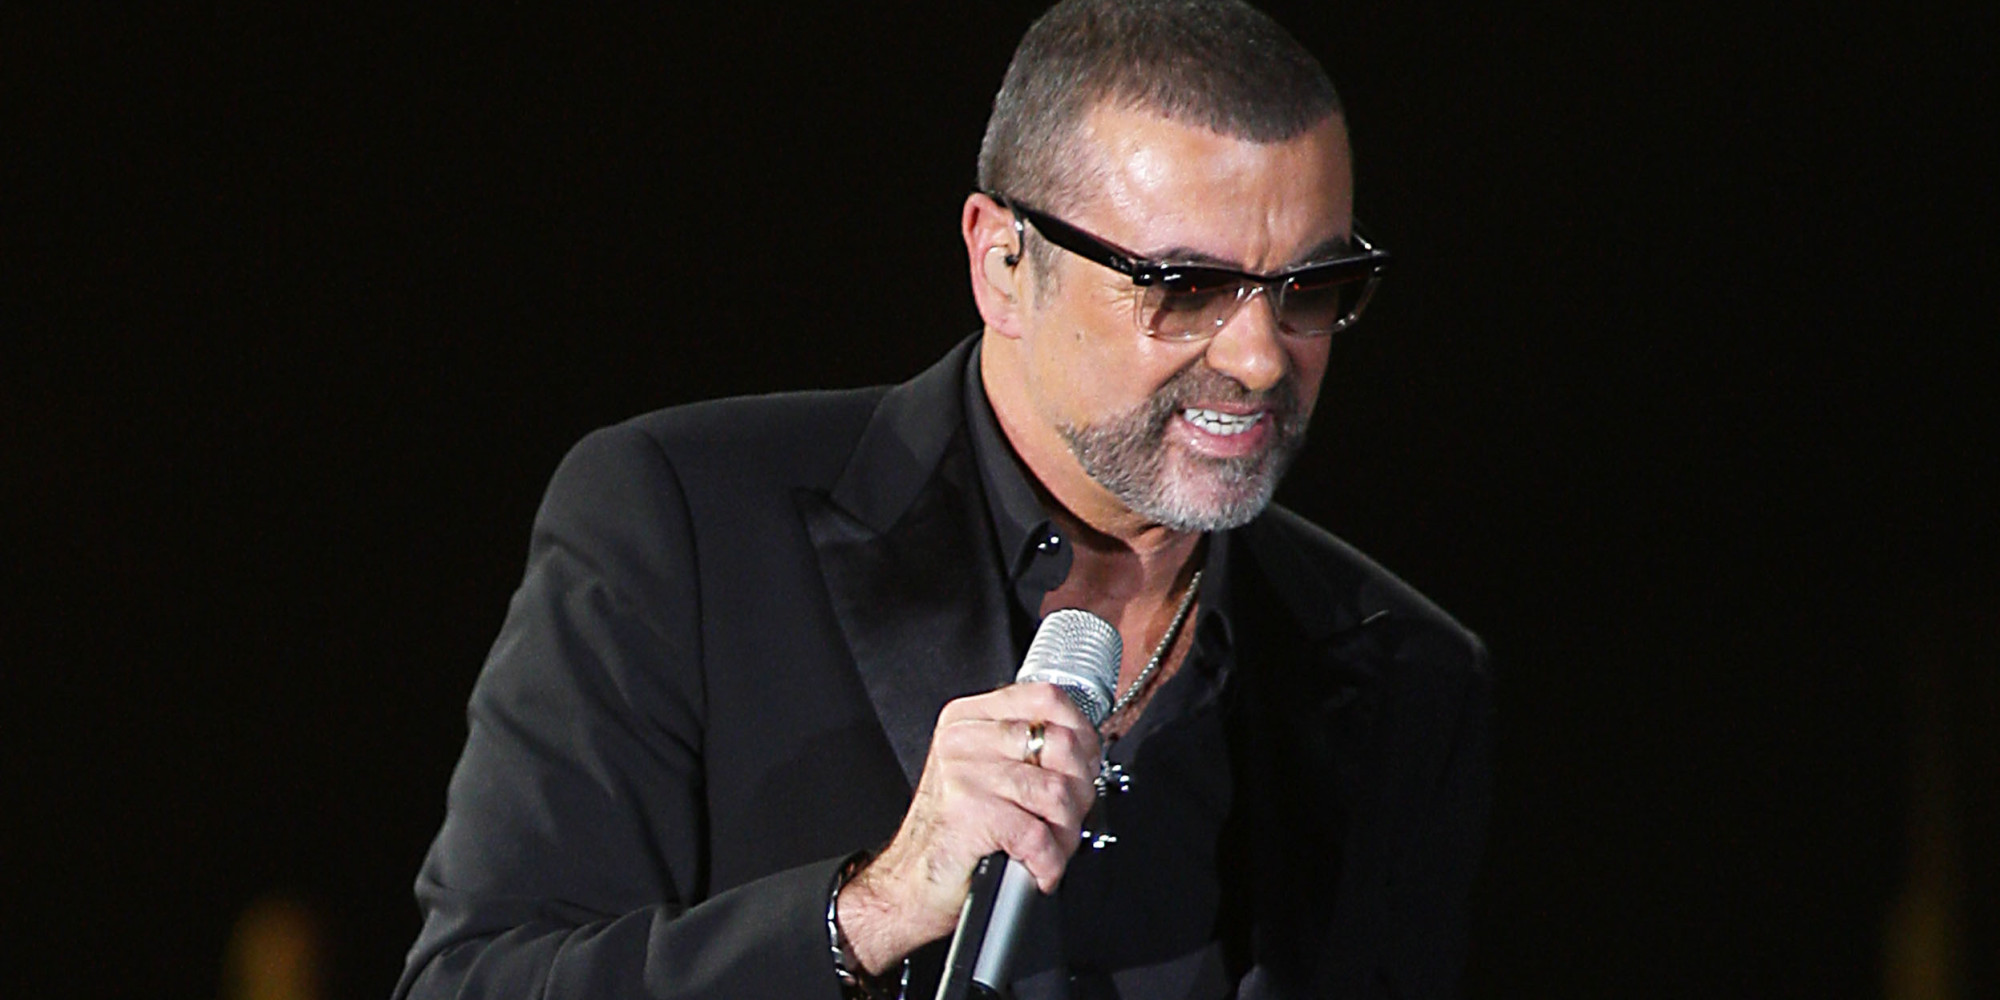 George Michael Denies 39;Crack Cocaine39; Allegations From 39;Distant